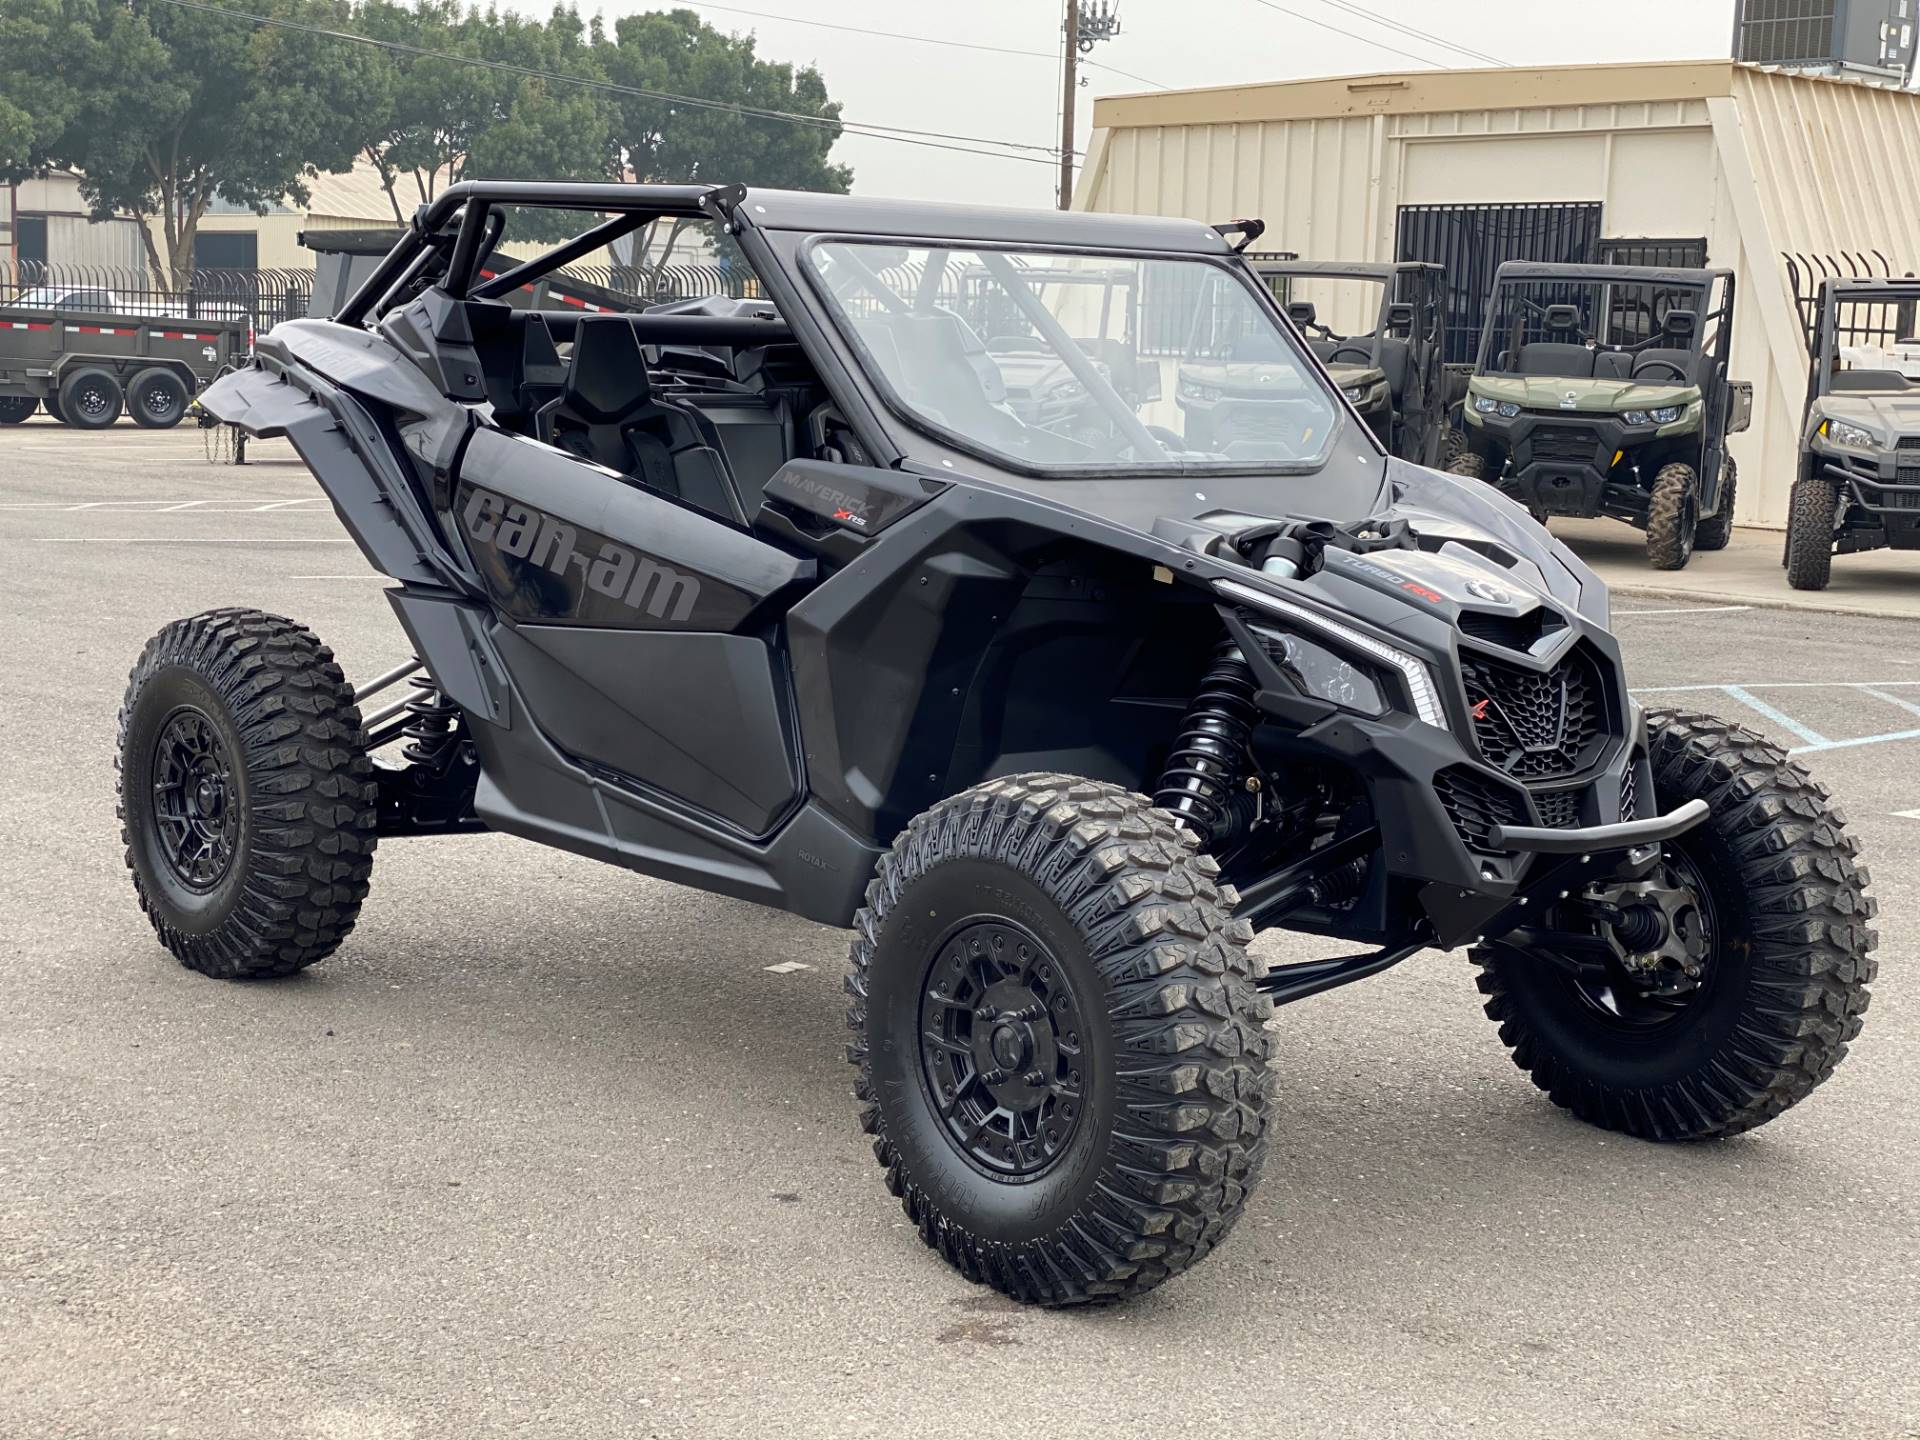 2020 Can-Am Maverick X3 X RS Turbo RR in Merced, California - Photo 3